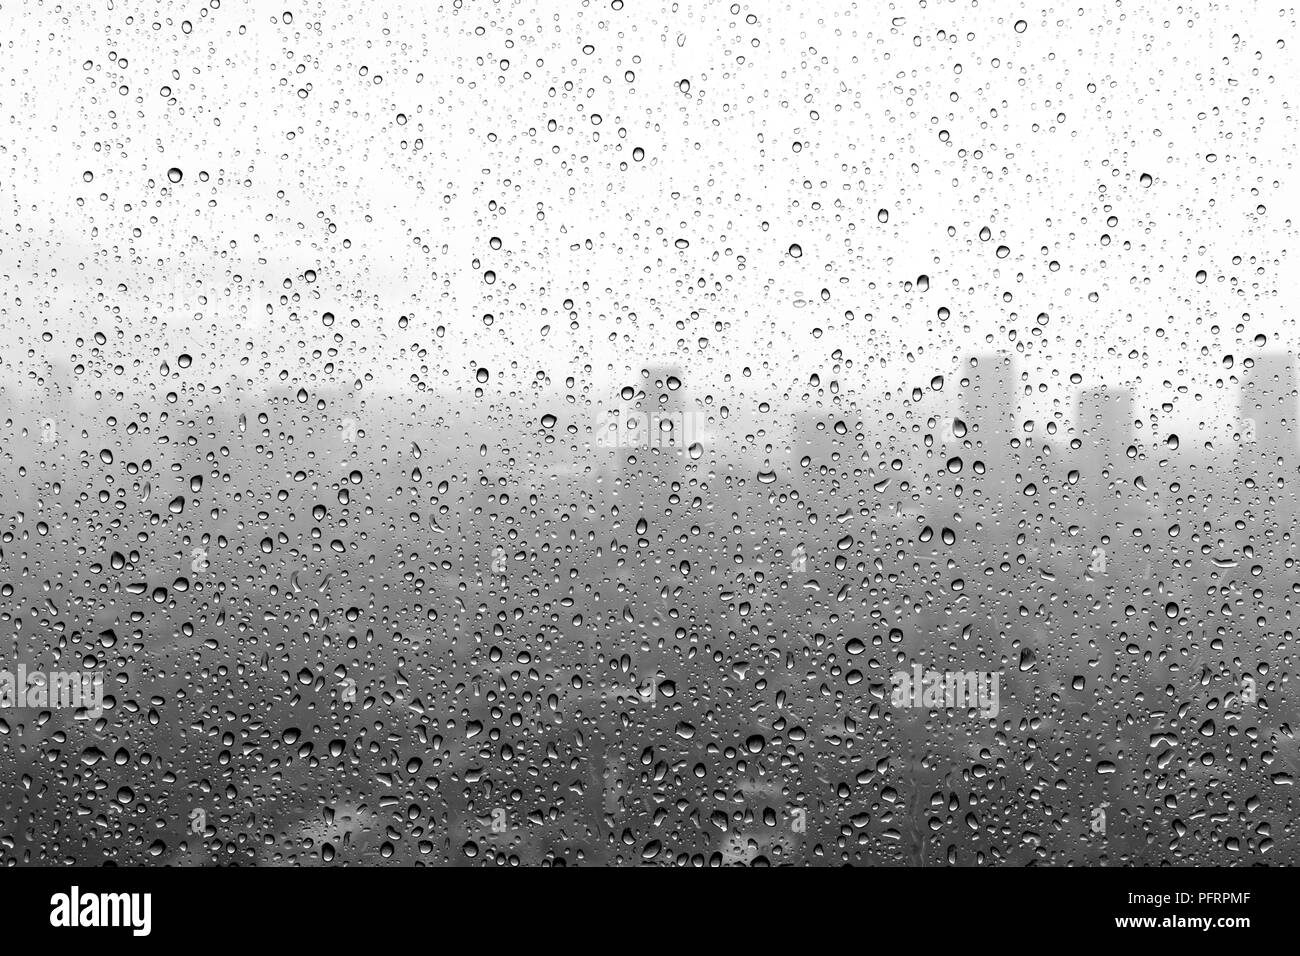 Black and white rain drops on a window stock photo 216266975 alamy